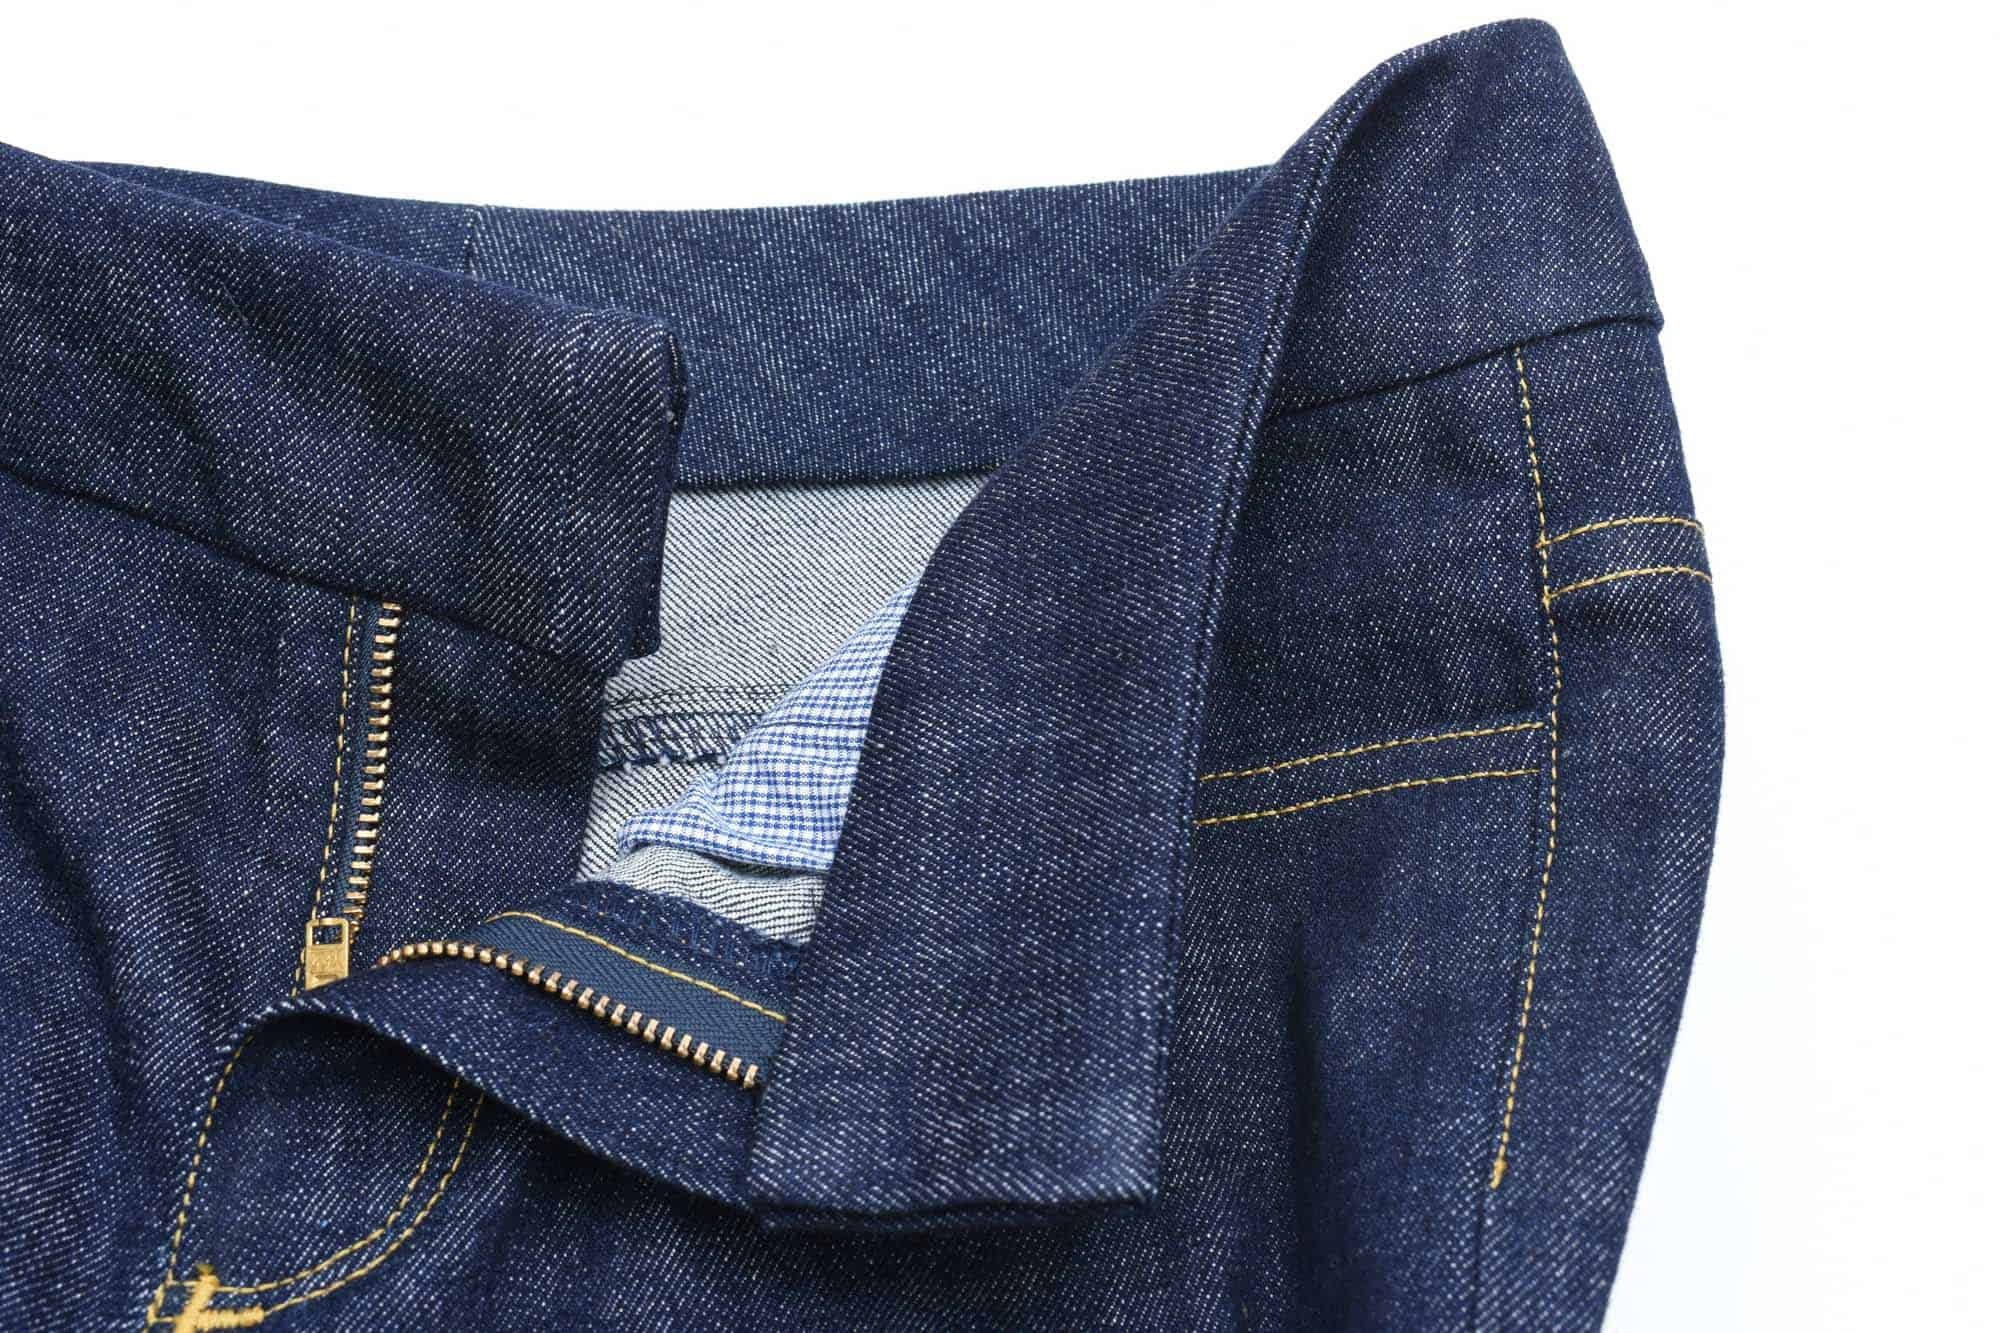 Sewing a jeans waistband tutorial